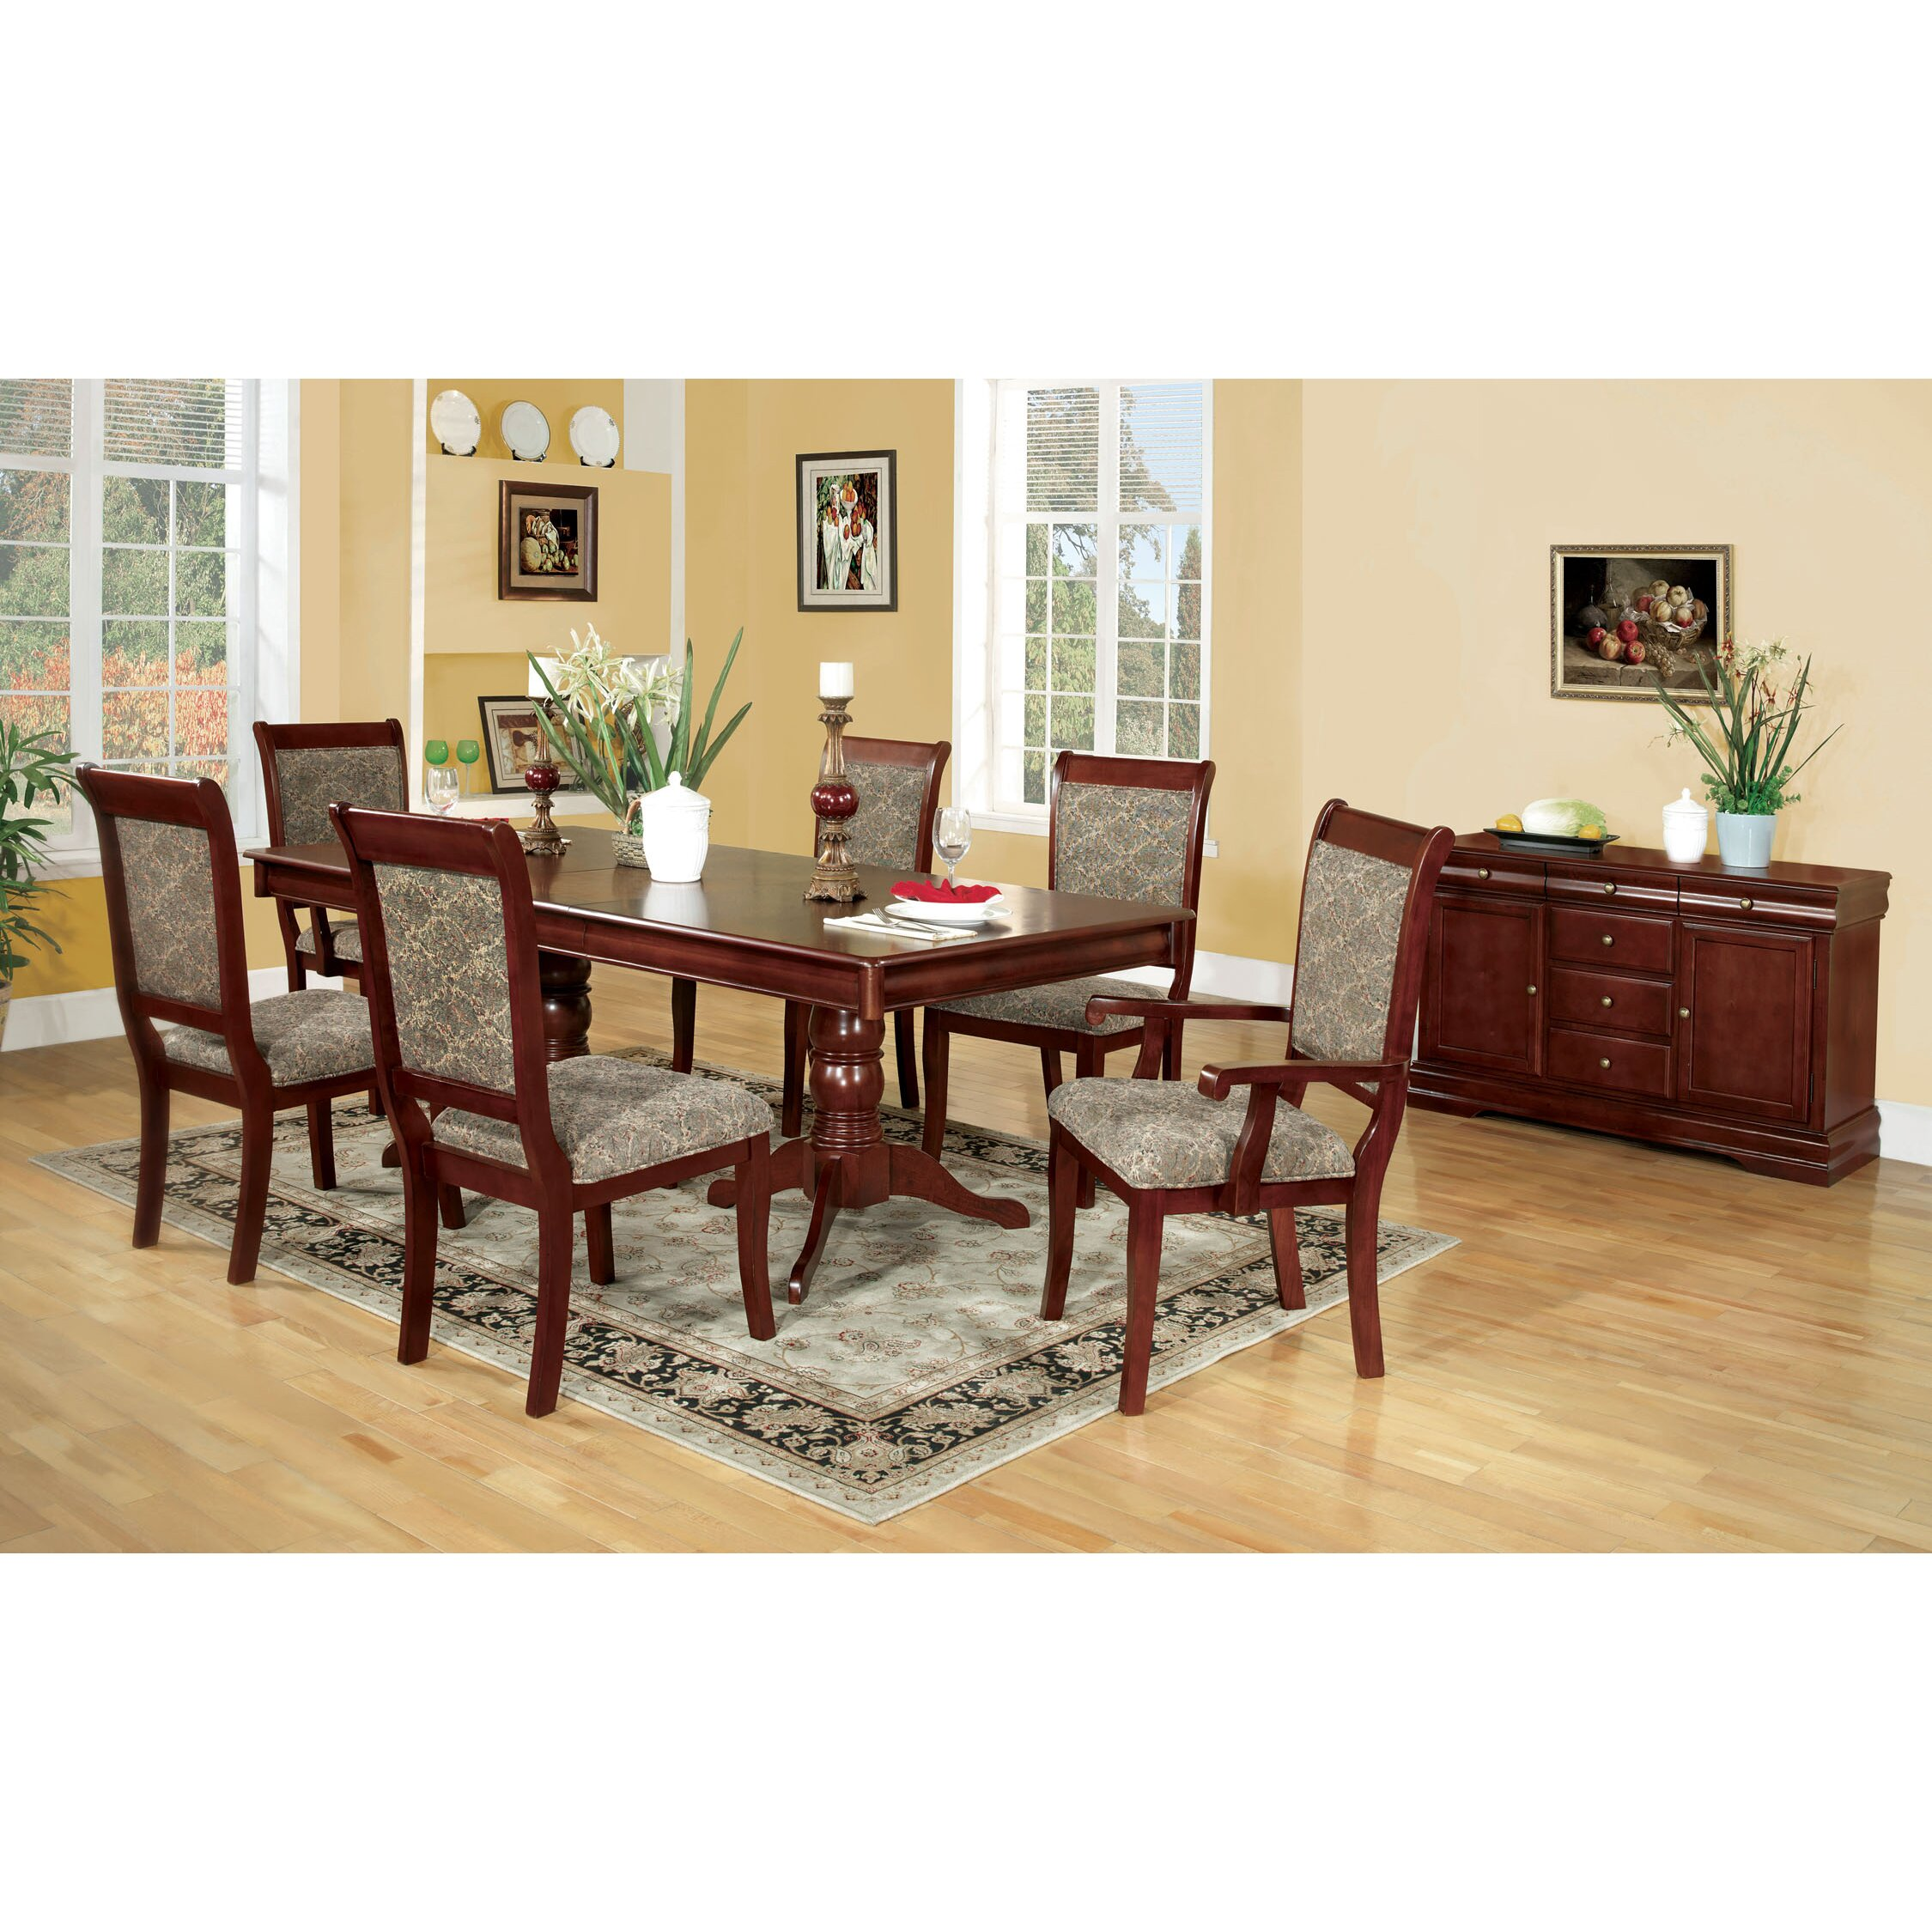 Hokku designs nikolas 7 piece dining set reviews wayfair for Dining set design